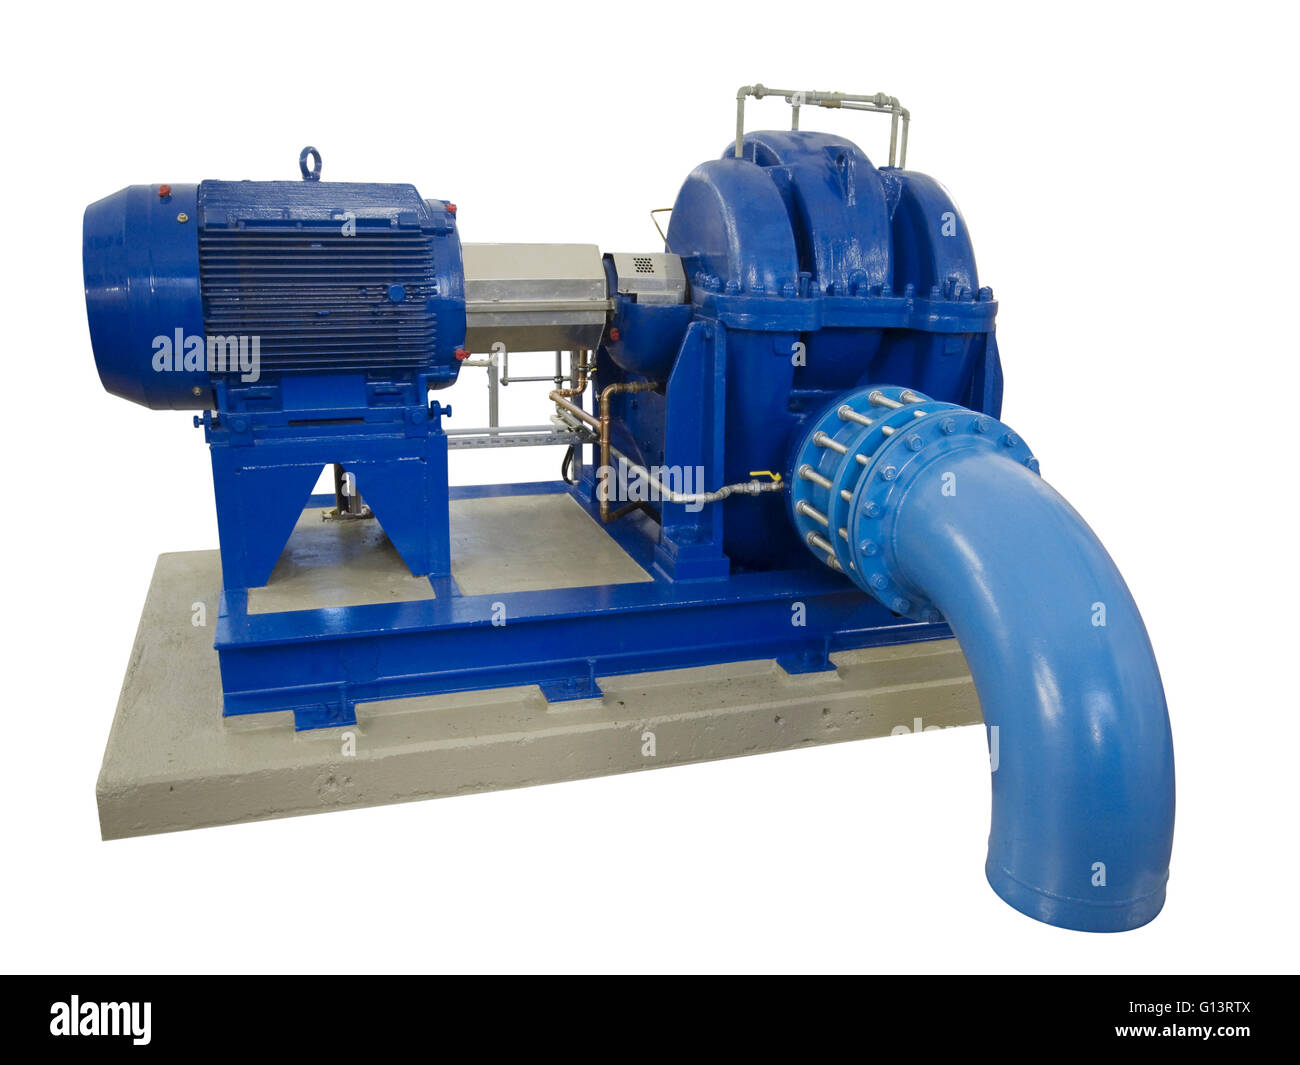 blue industrial pump with electric motor on concrete base